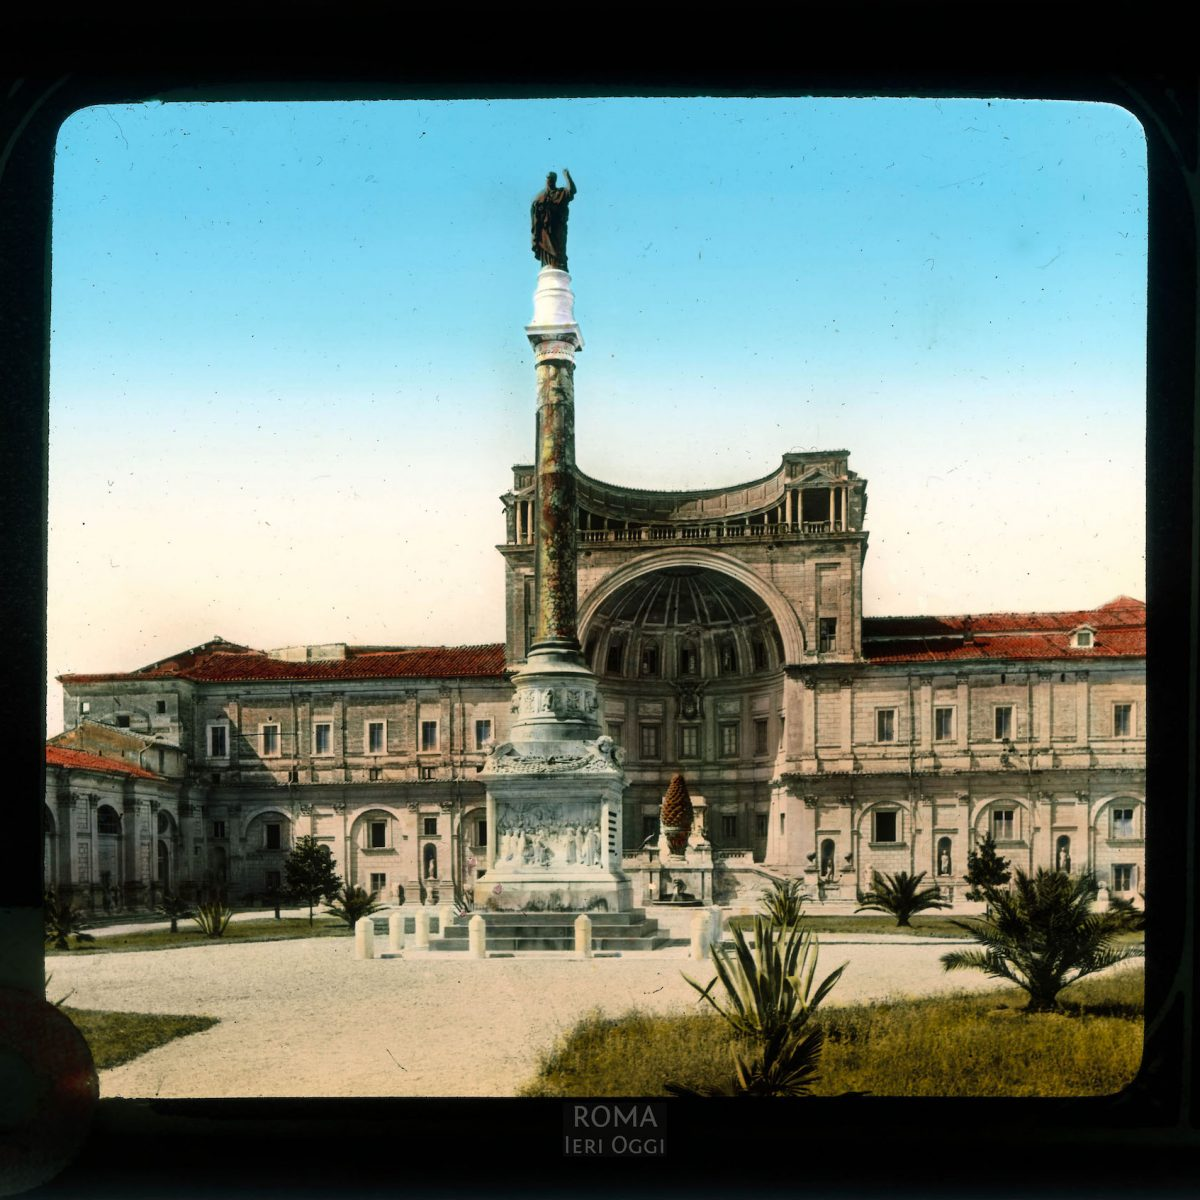 Vatican City. Vatican Museums, Cortile della Pigna: view of column, pine cone, niche of the Vatican Museums View in tinted lantern slide, ca. 1919-1938. The building dates from 1506-1514 and 1562-65; the column was erected in 1886.